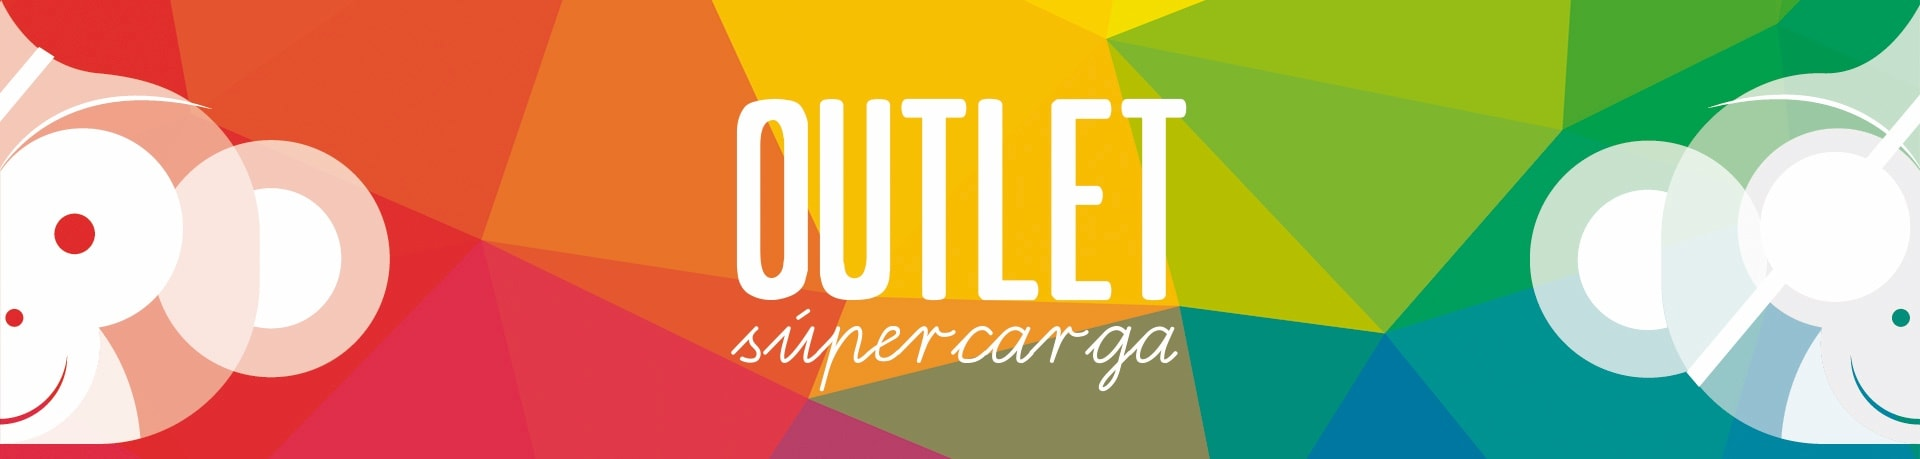 Outlet - Monetes